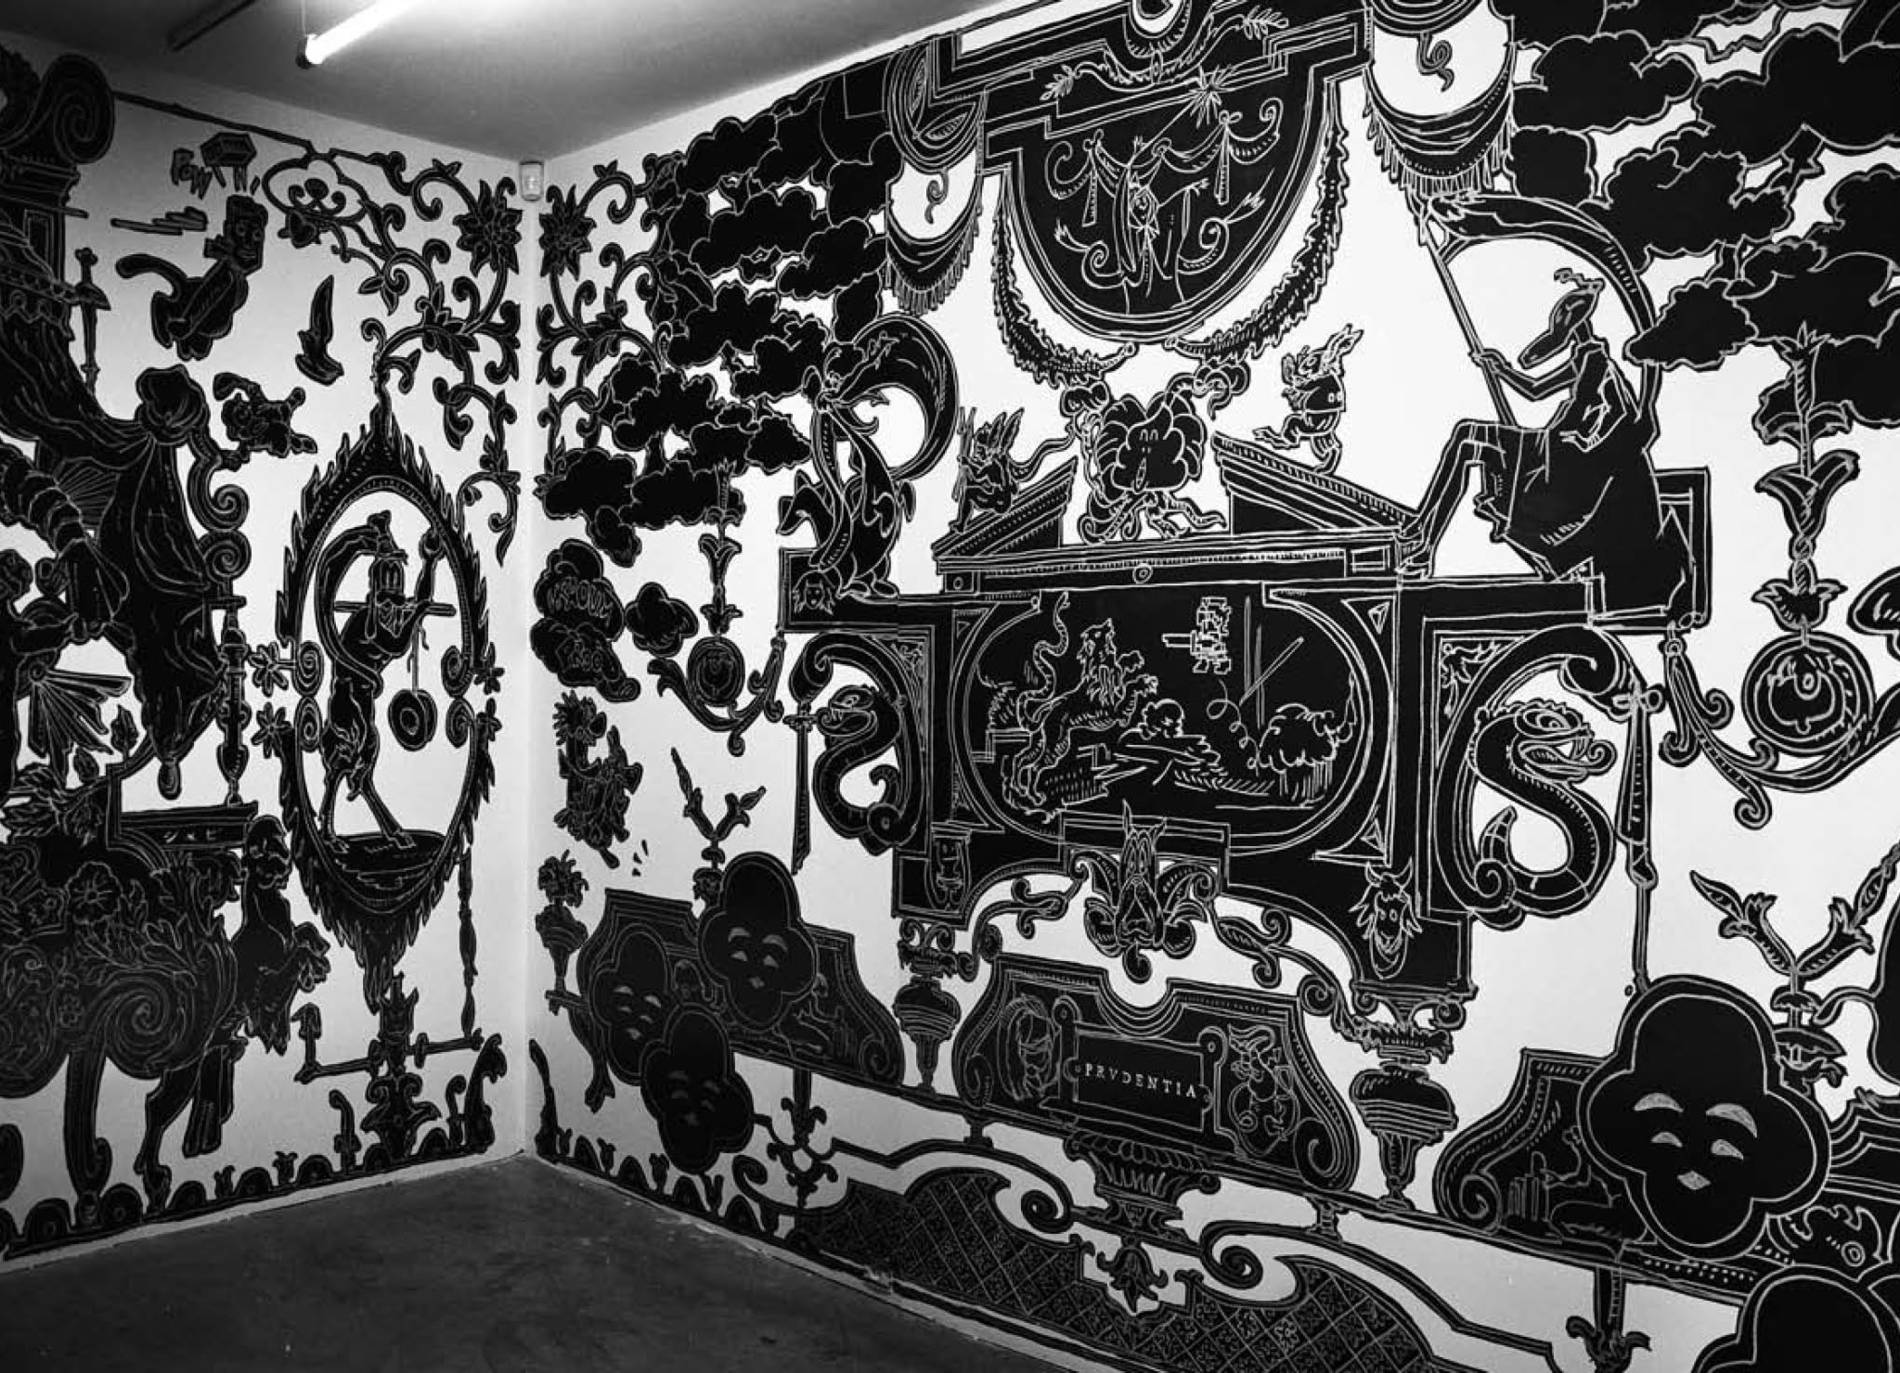 ·: Nicolas Buffe :· - Nicolas Buffe - 2007---12 - Studiolo @ La Maison Rouge, Paris - 05, 5 x 3 m : Ink, Markers on wall